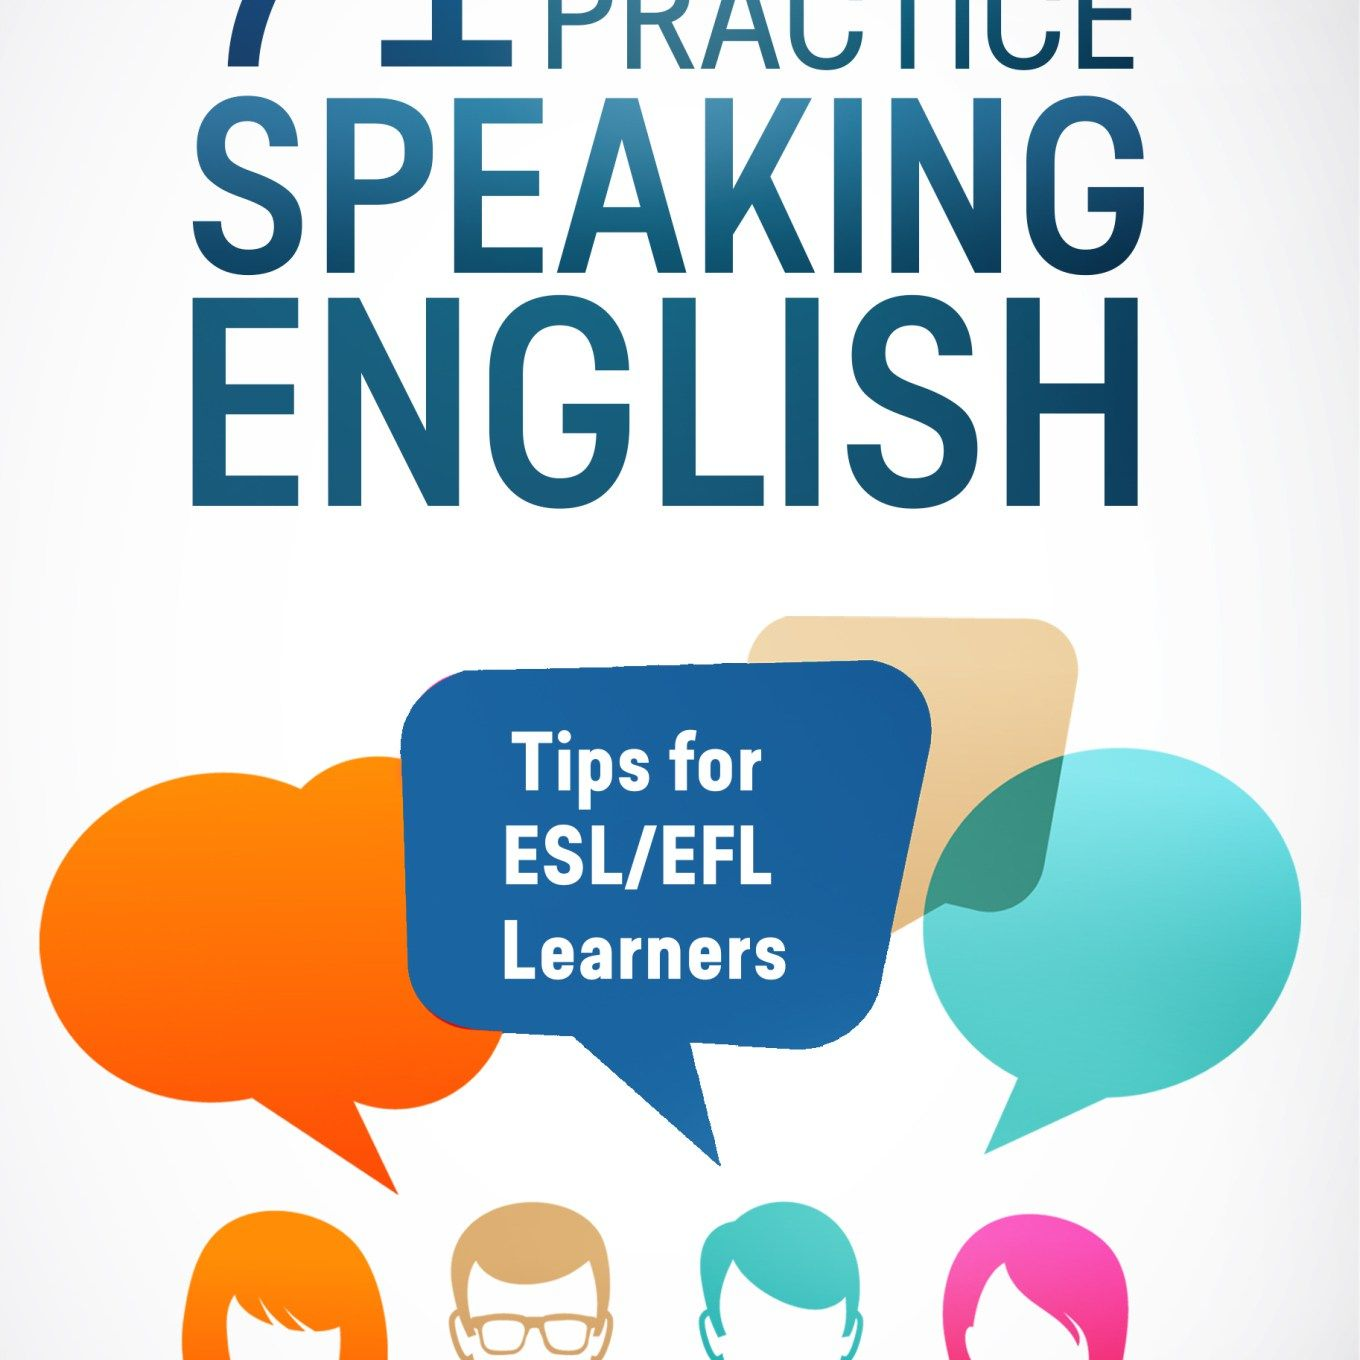 71 Ways To Practice Speaking English Tips For Esl Efl